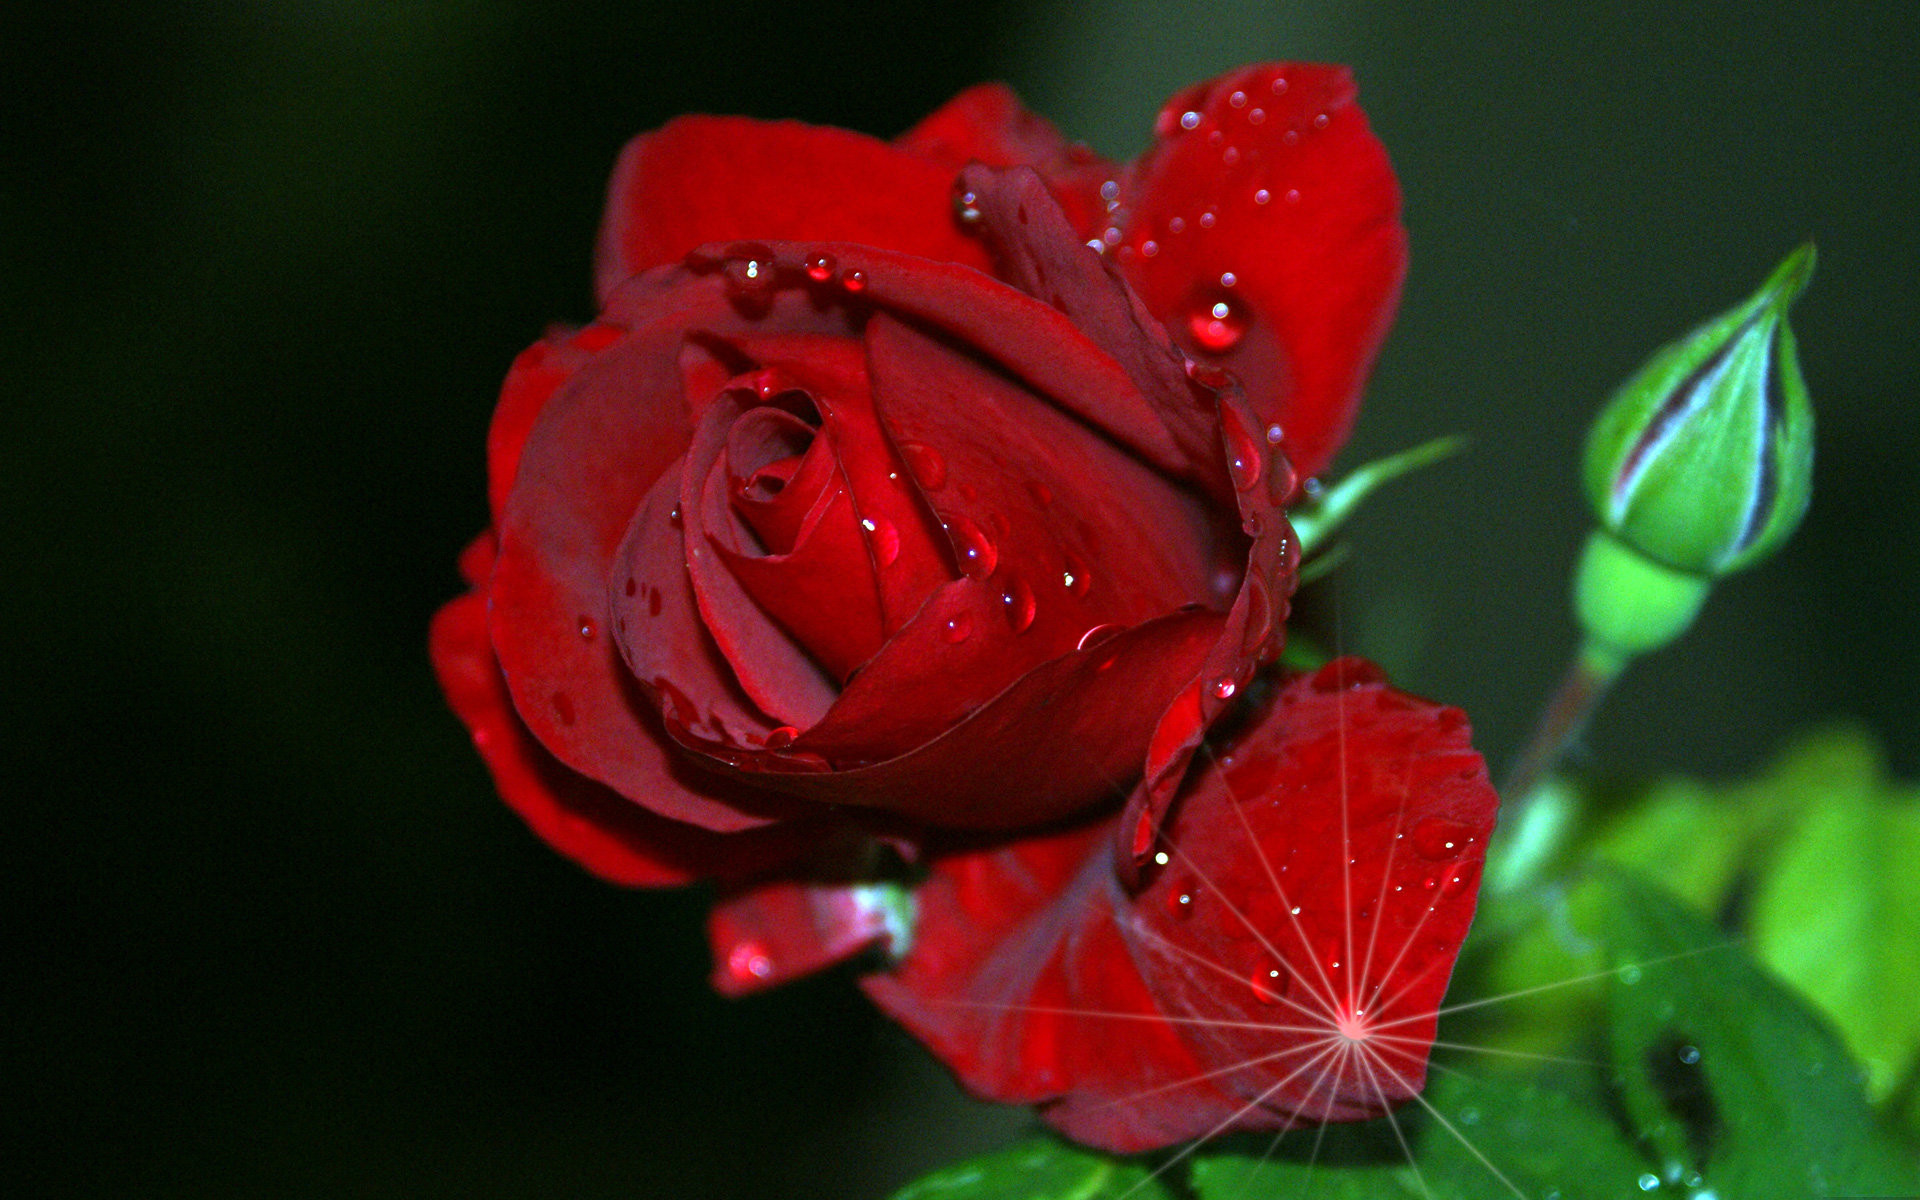 Red rose collected